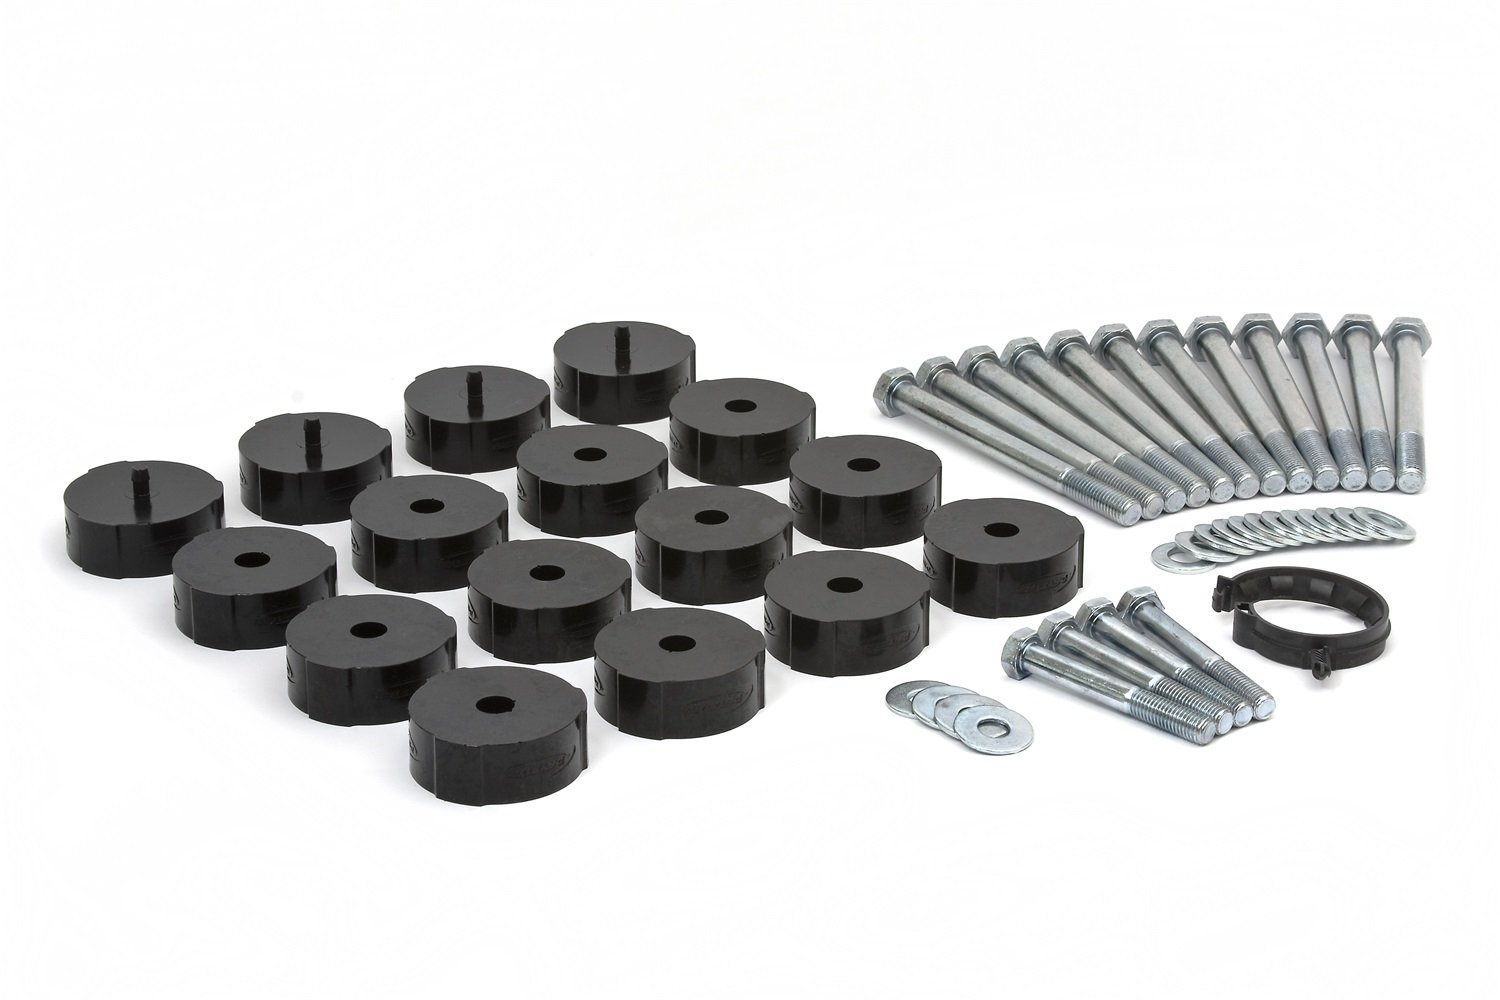 Daystar fits 2004 to 2009 H3 and 2009 to 2010 H3T 2//4WD Hummer H3 1 Taller Polyurethane Body Mount Kit Works with Factory Body Mount Bushings Made in America KG04501BK